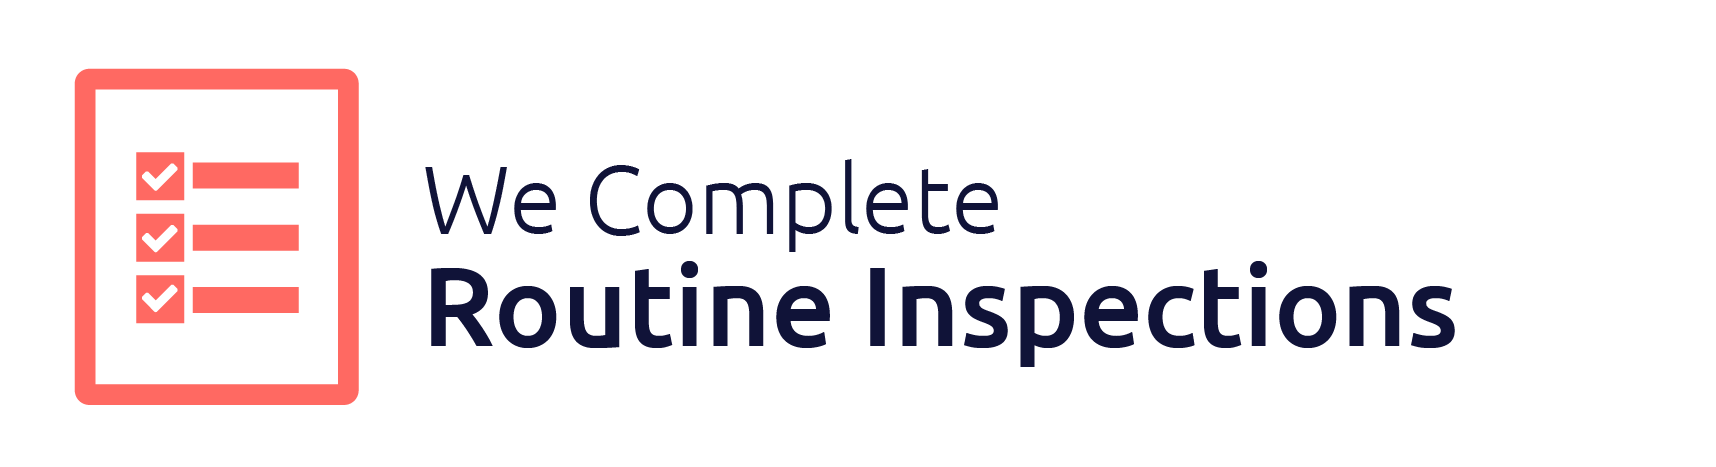 We Complete Routine Inspections | Locate Property